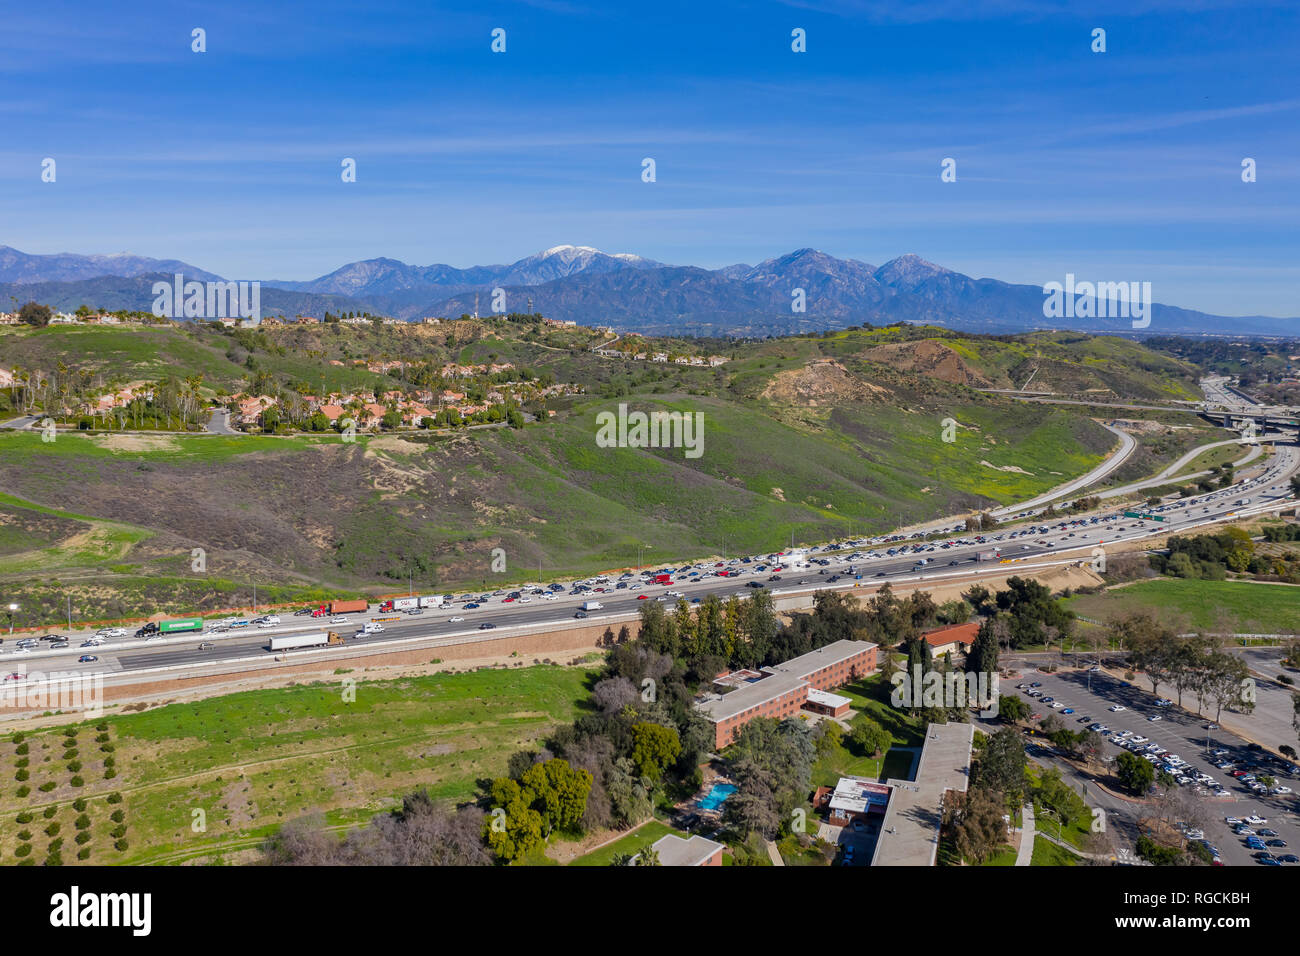 Aerial view of highway and cityscape of Pomona at California - Stock Image